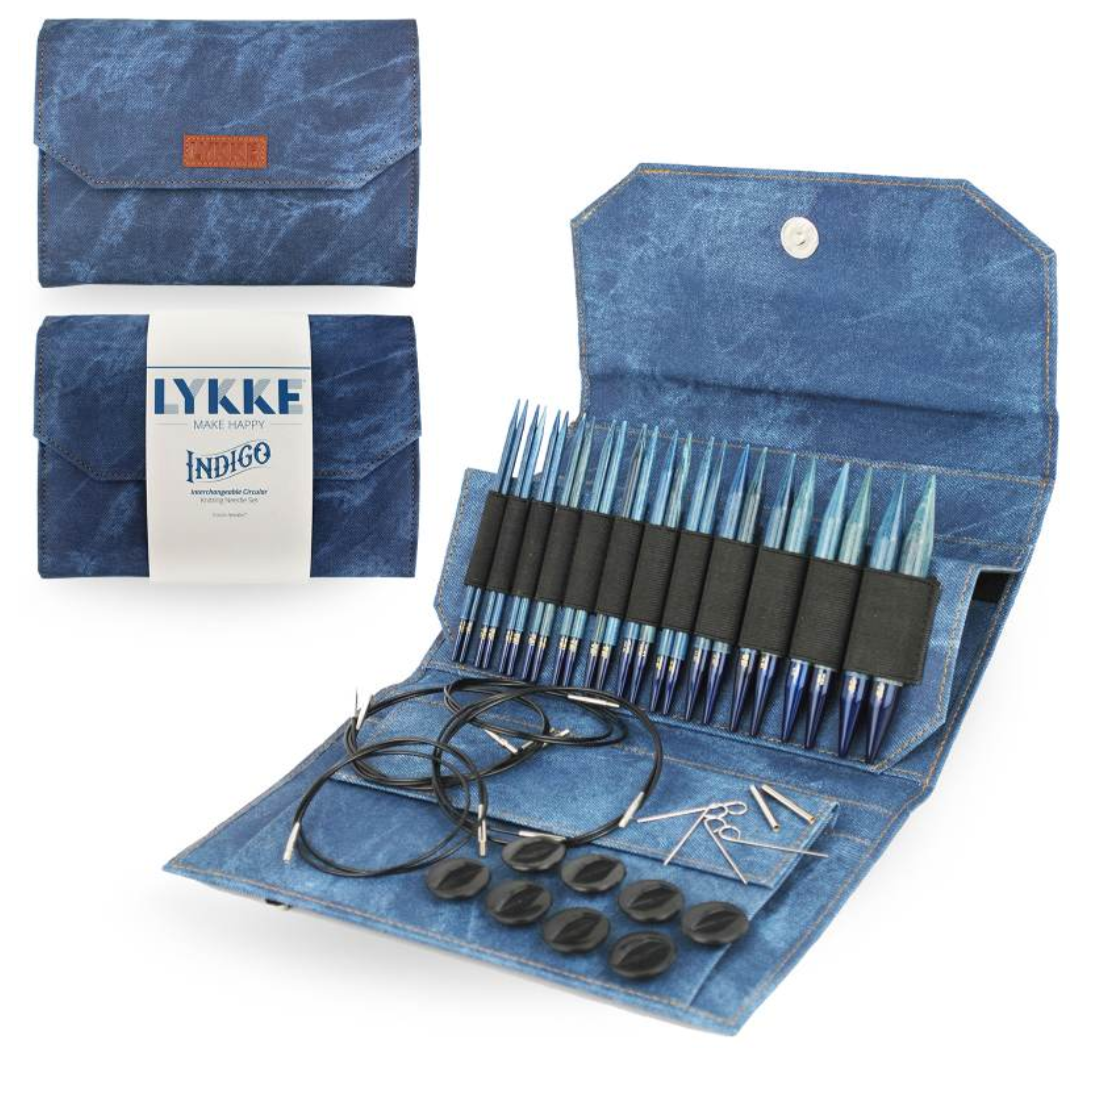 Lykke Driftwood Interchangeable Needle Set